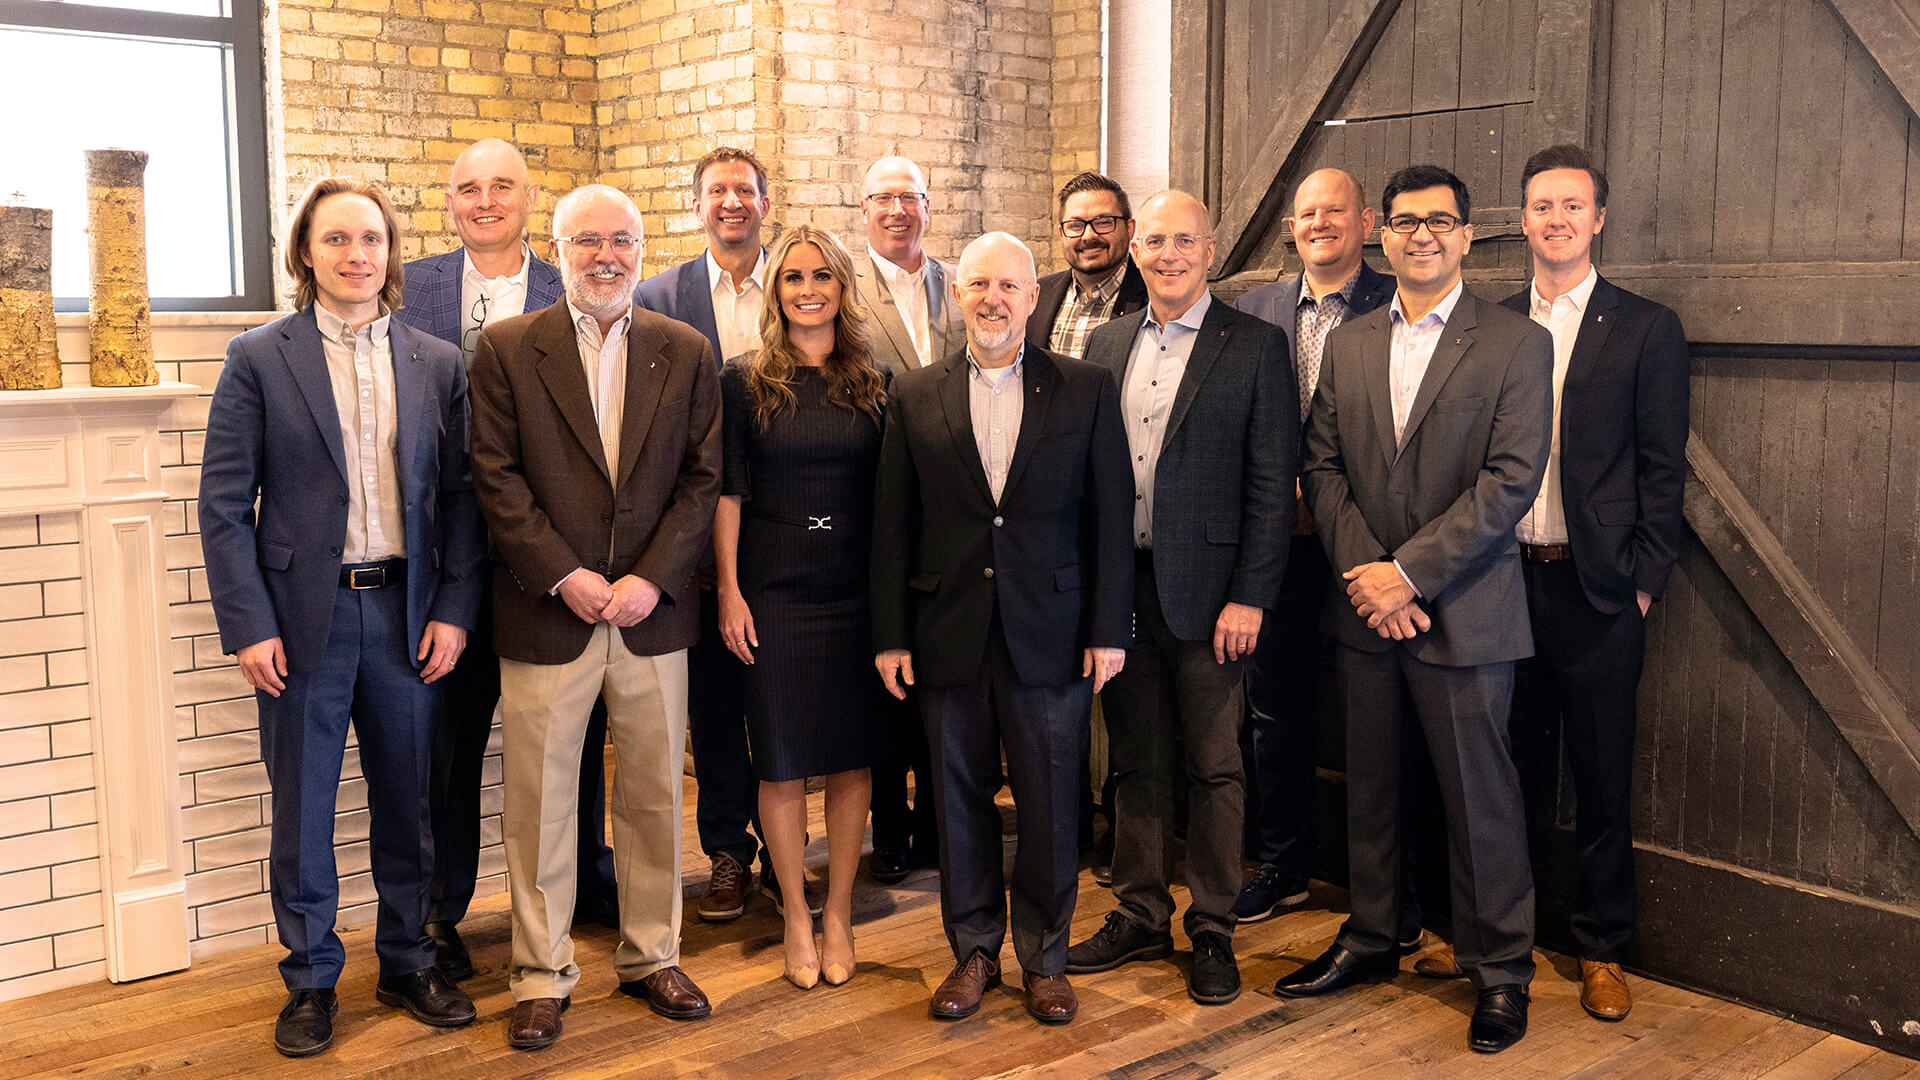 Integrity Continues to Innovate Insurance  with Acquisition of Data Analytics Company Deft Research